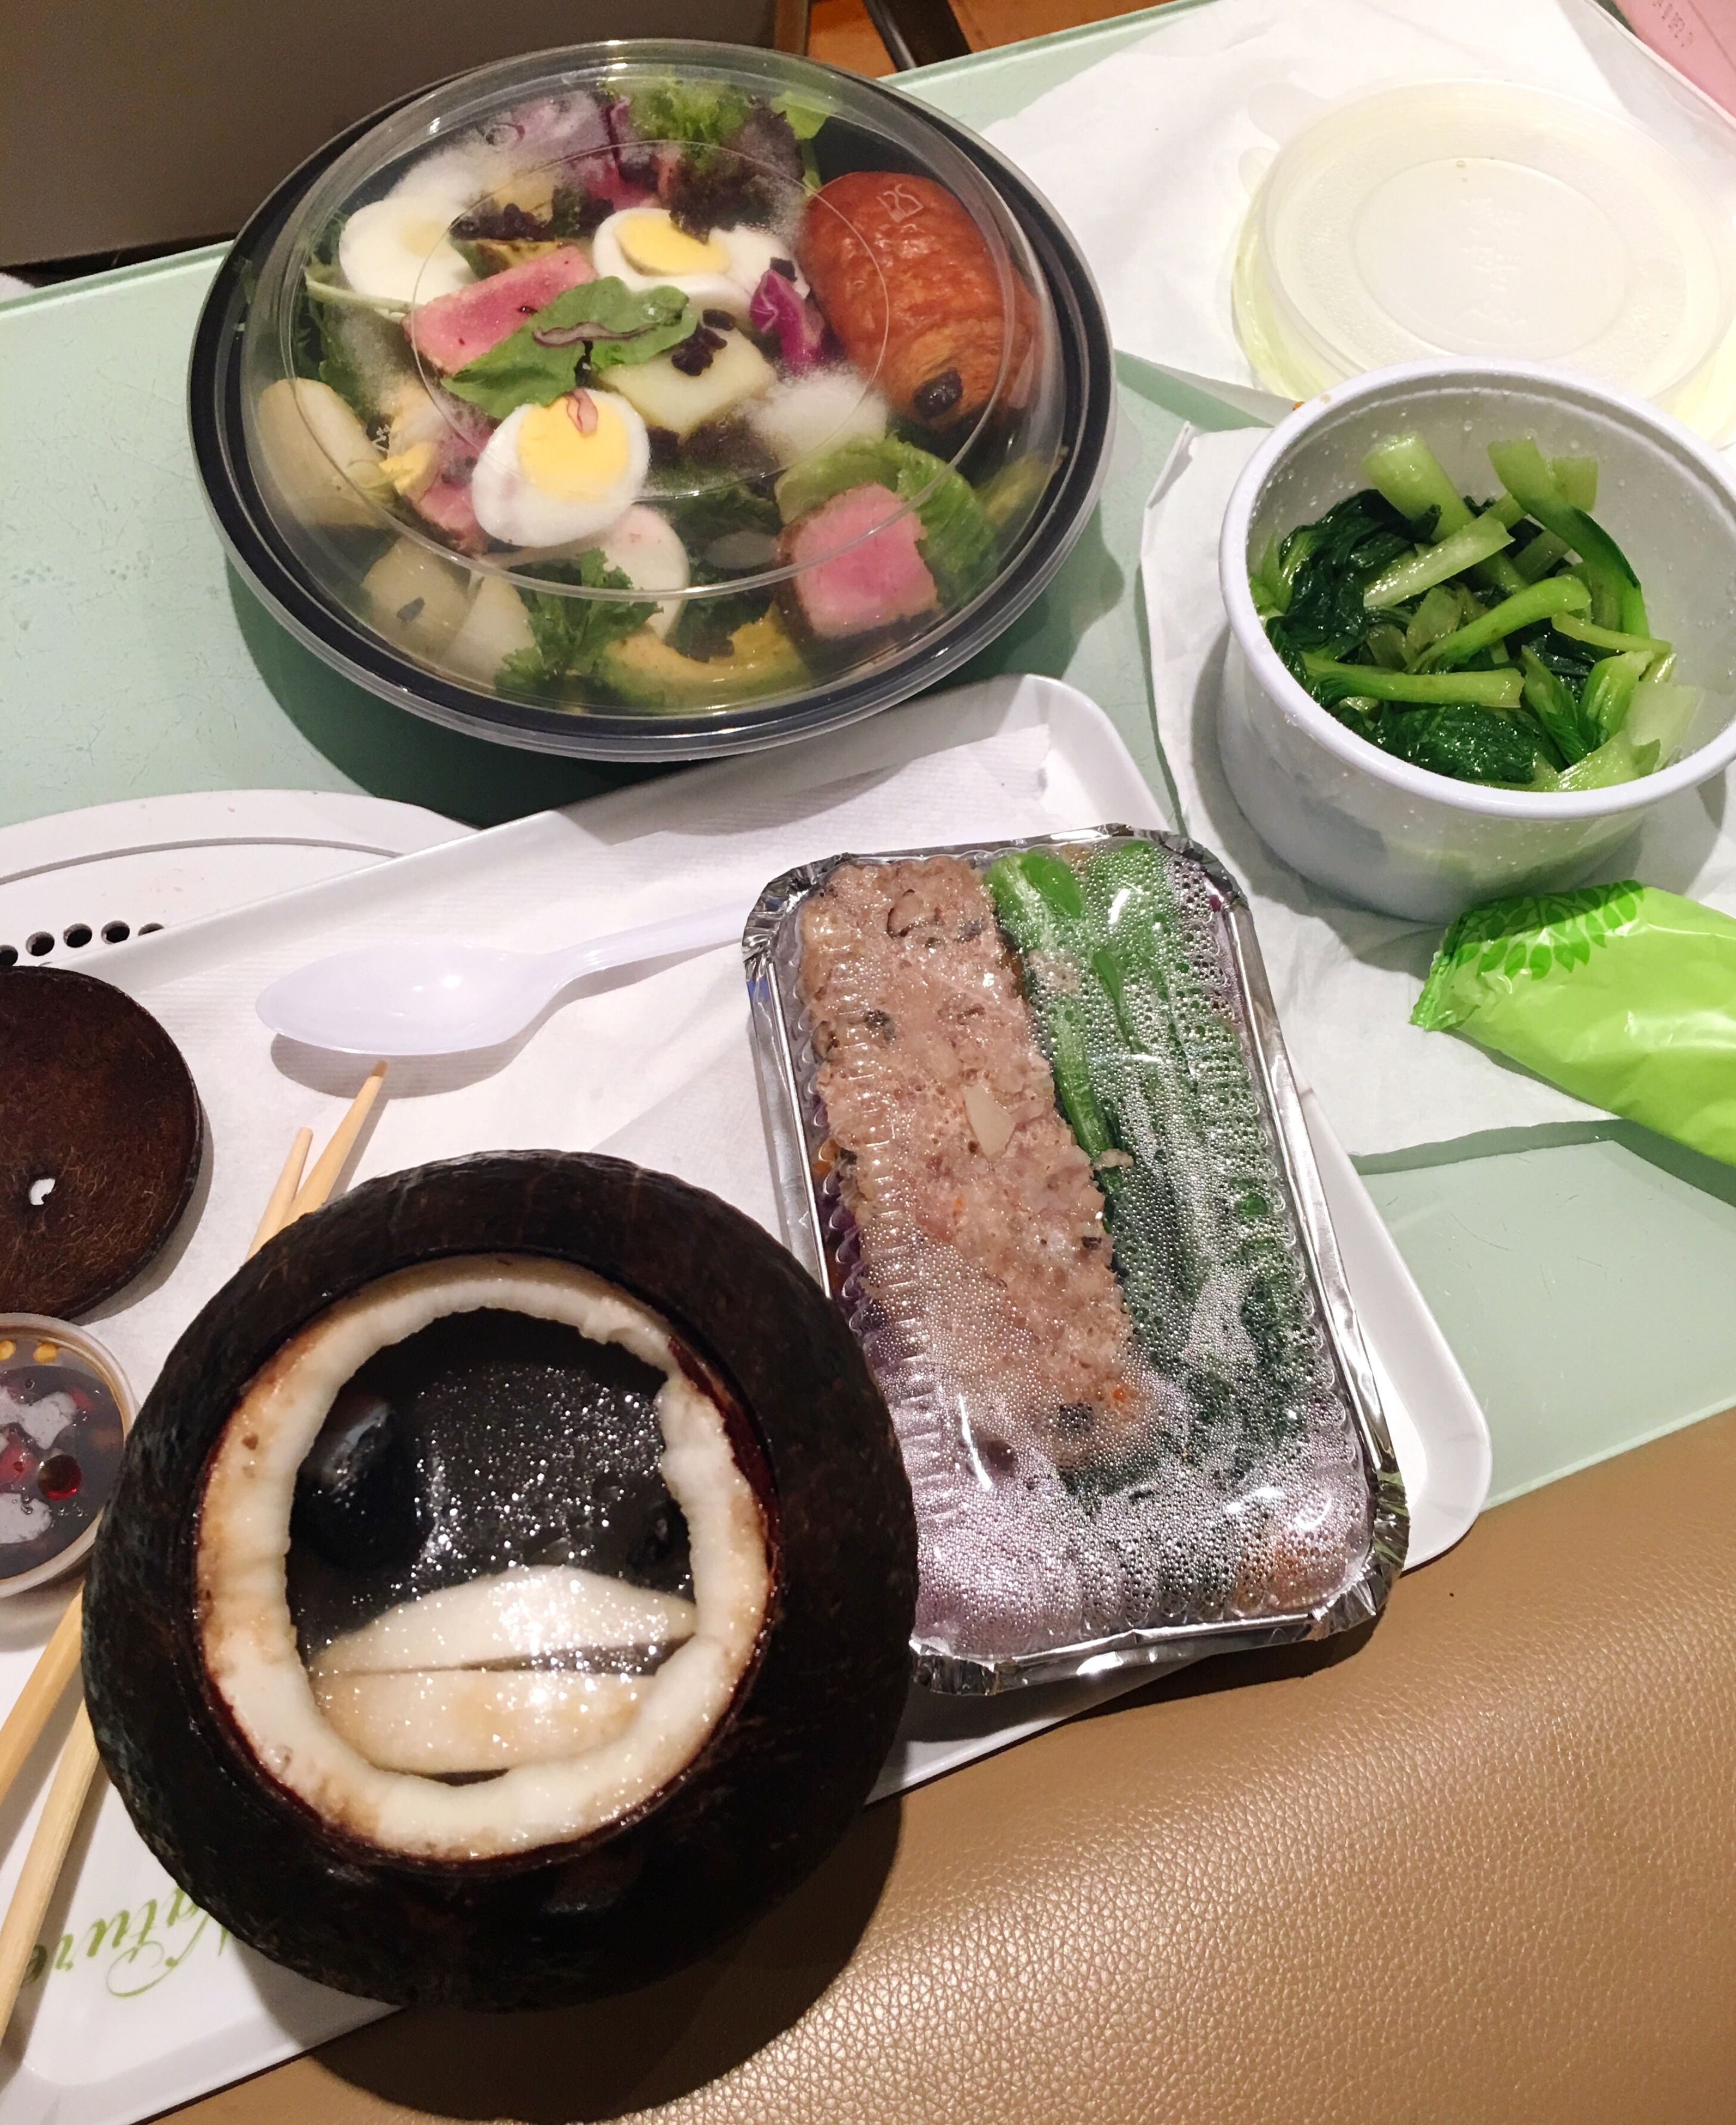 food and drink, food, freshness, plate, indoors, ready-to-eat, table, meal, spoon, temptation, bowl, high angle view, indulgence, vegetable, serving size, japanese food, dinner, lunch, main course, garnish, food styling